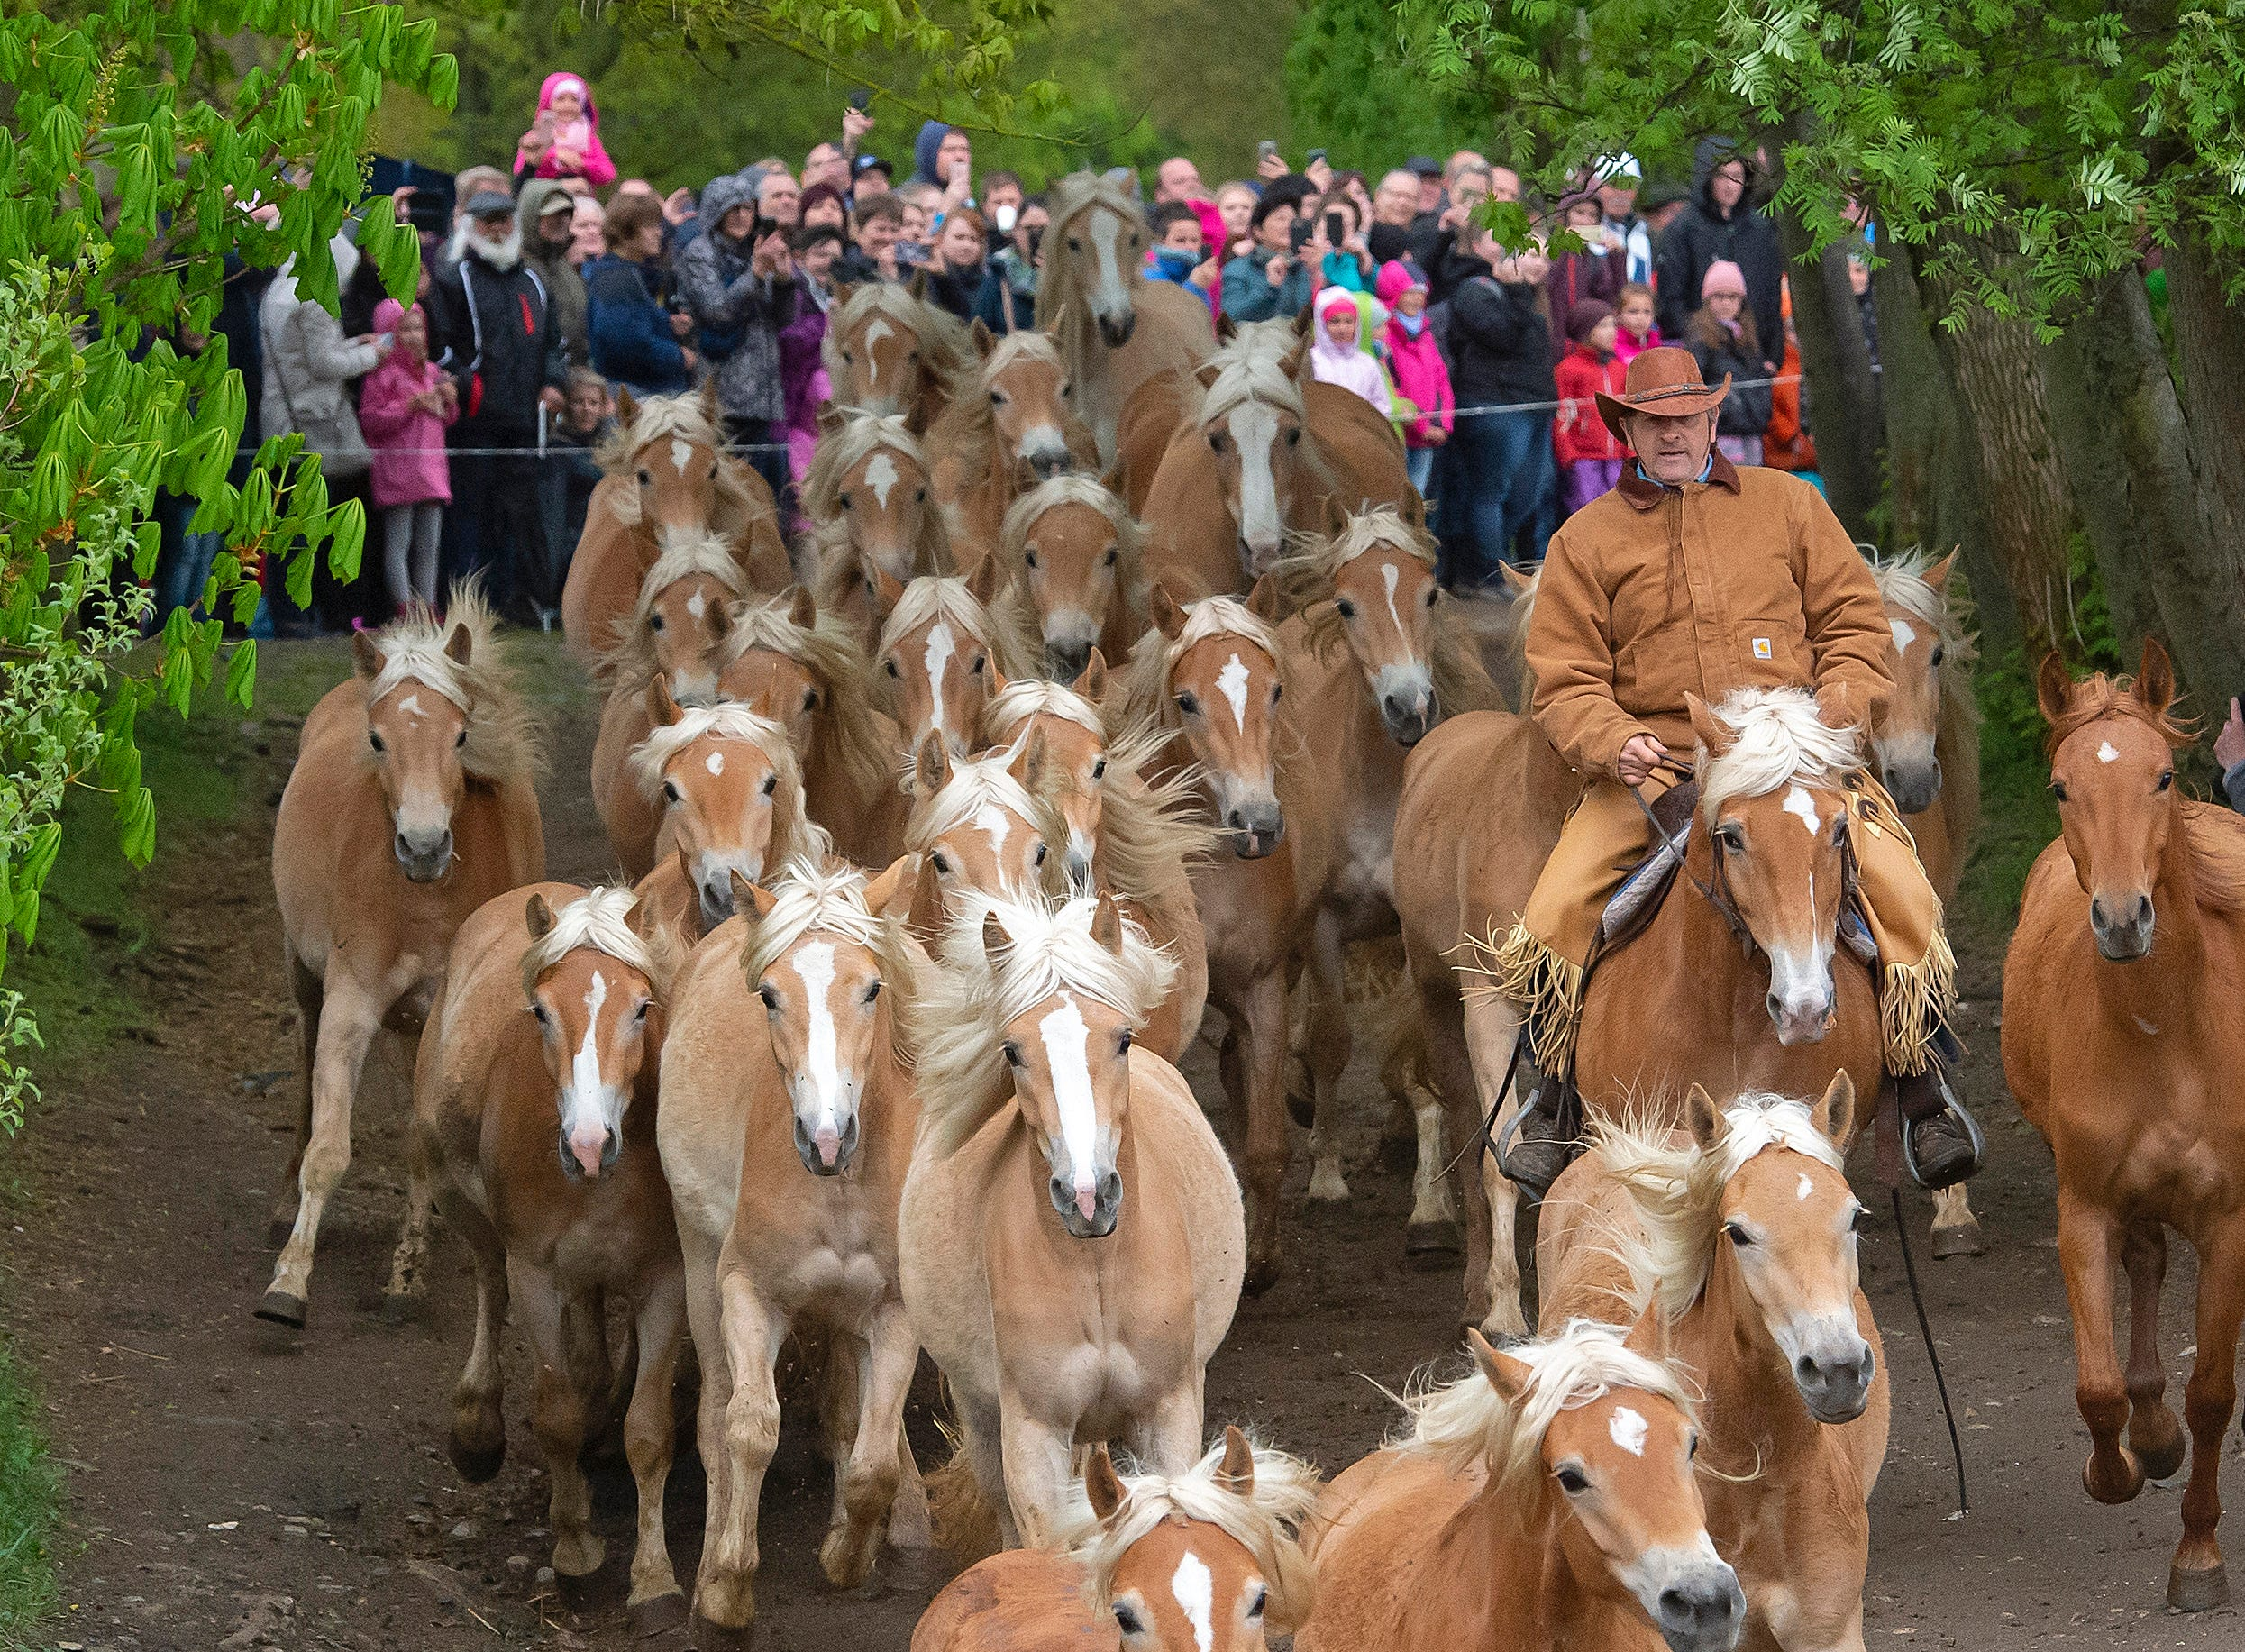 Uwe Ott leads the Haflinger horses during this year's first turnout to grass at Europe's largest Haflinger stud-farm in Meura, Germany, Sunday, April 28, 2019. More than 300 Haflinger horses, bred for use in mountainous terrain, are living there.